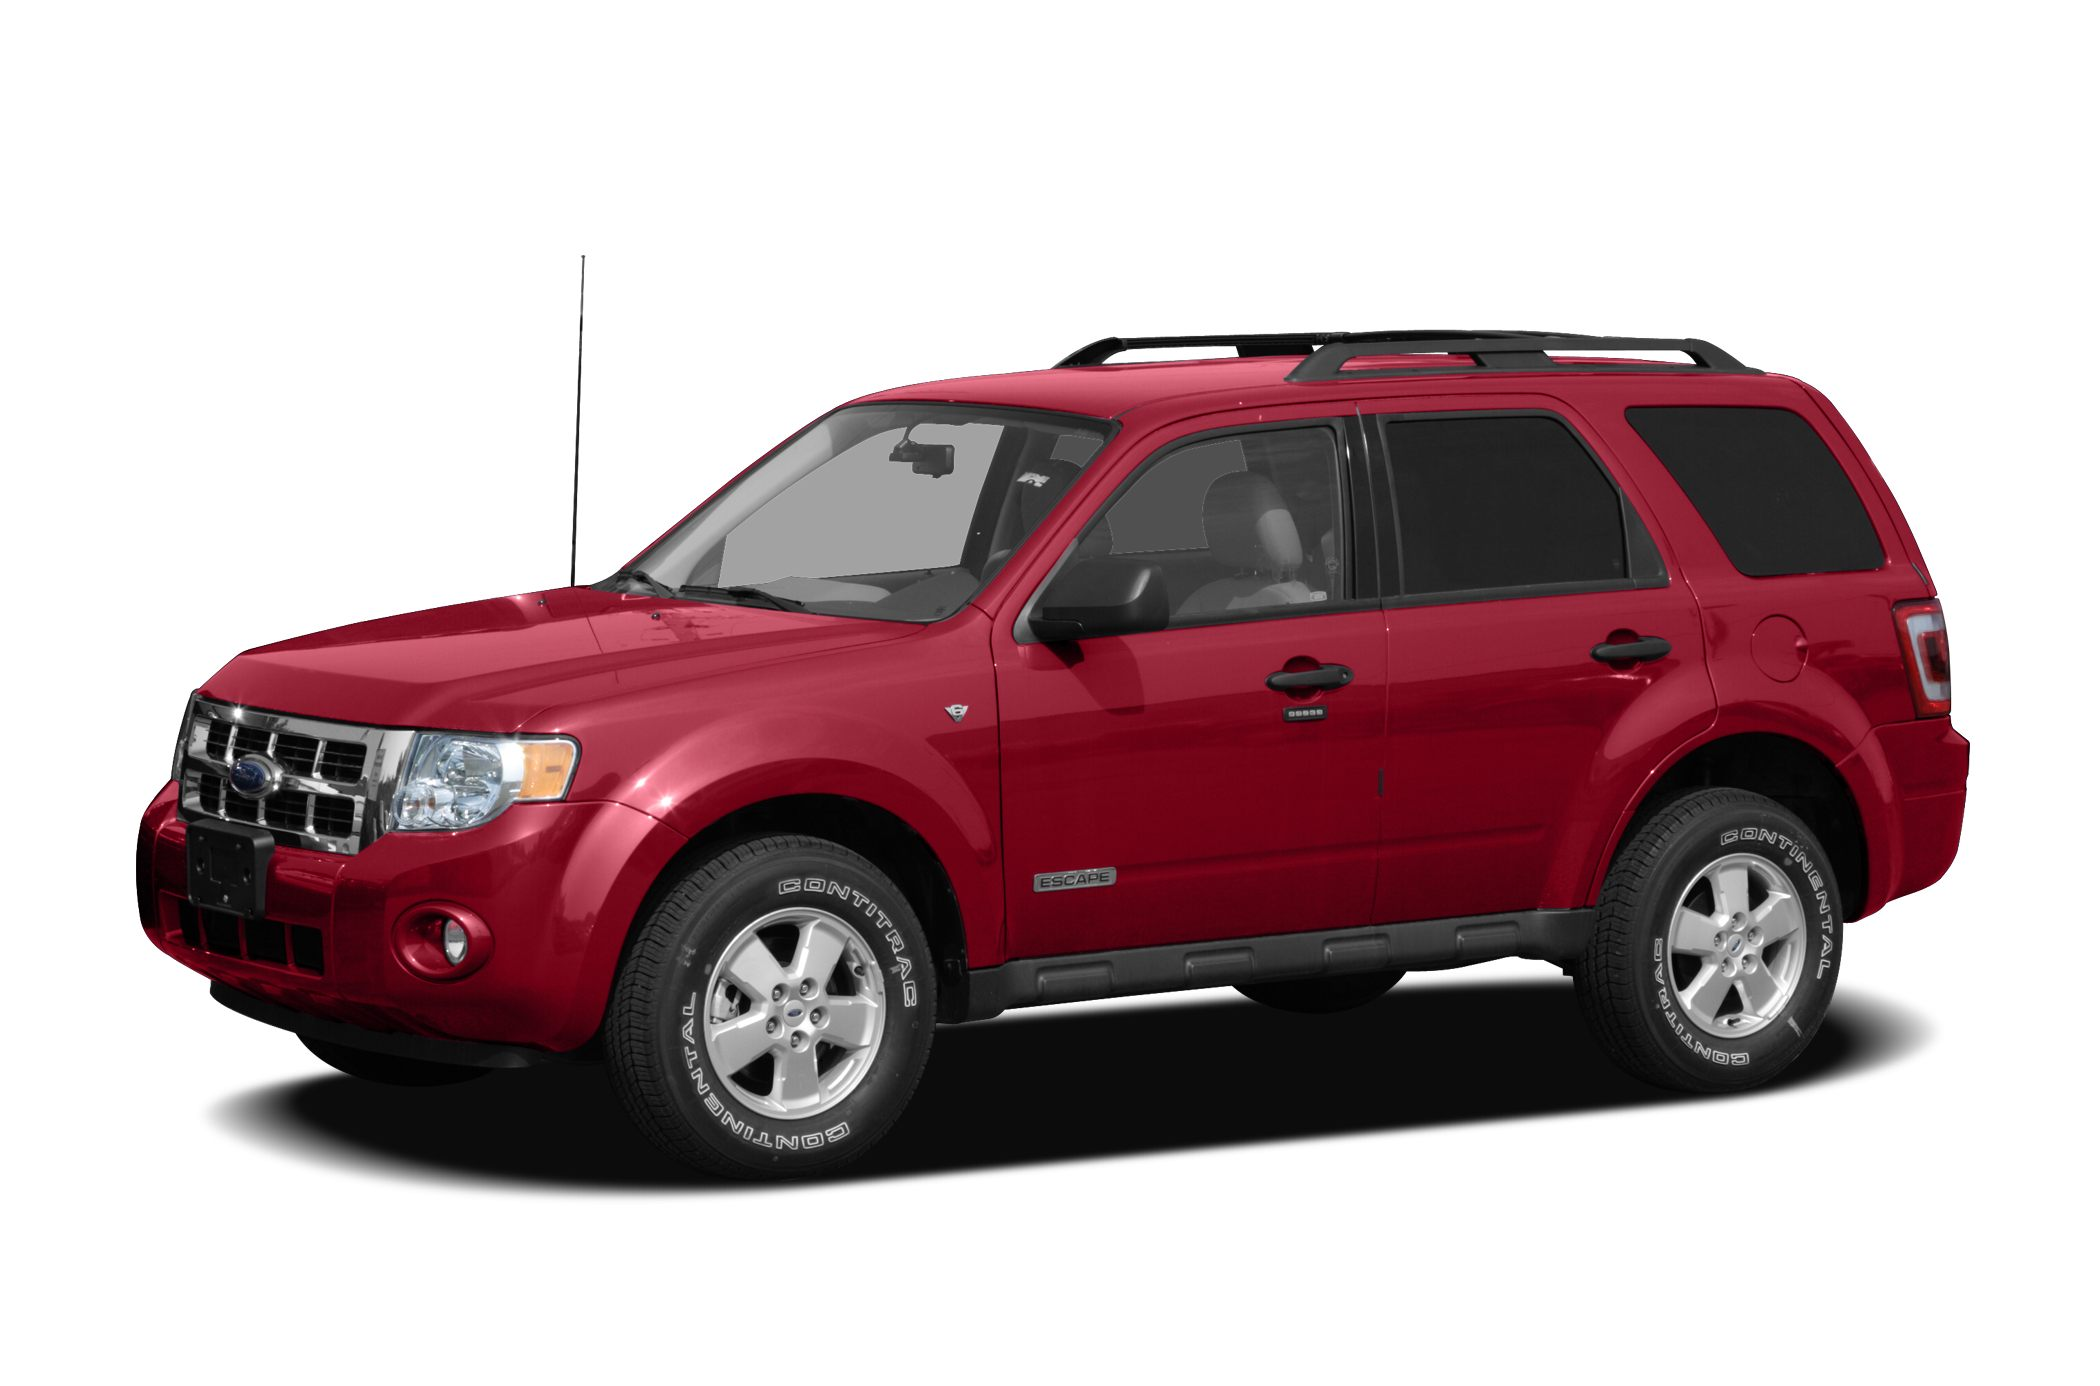 2008 Ford Escape Limited SUV for sale in Missoula for $13,995 with 121,503 miles.